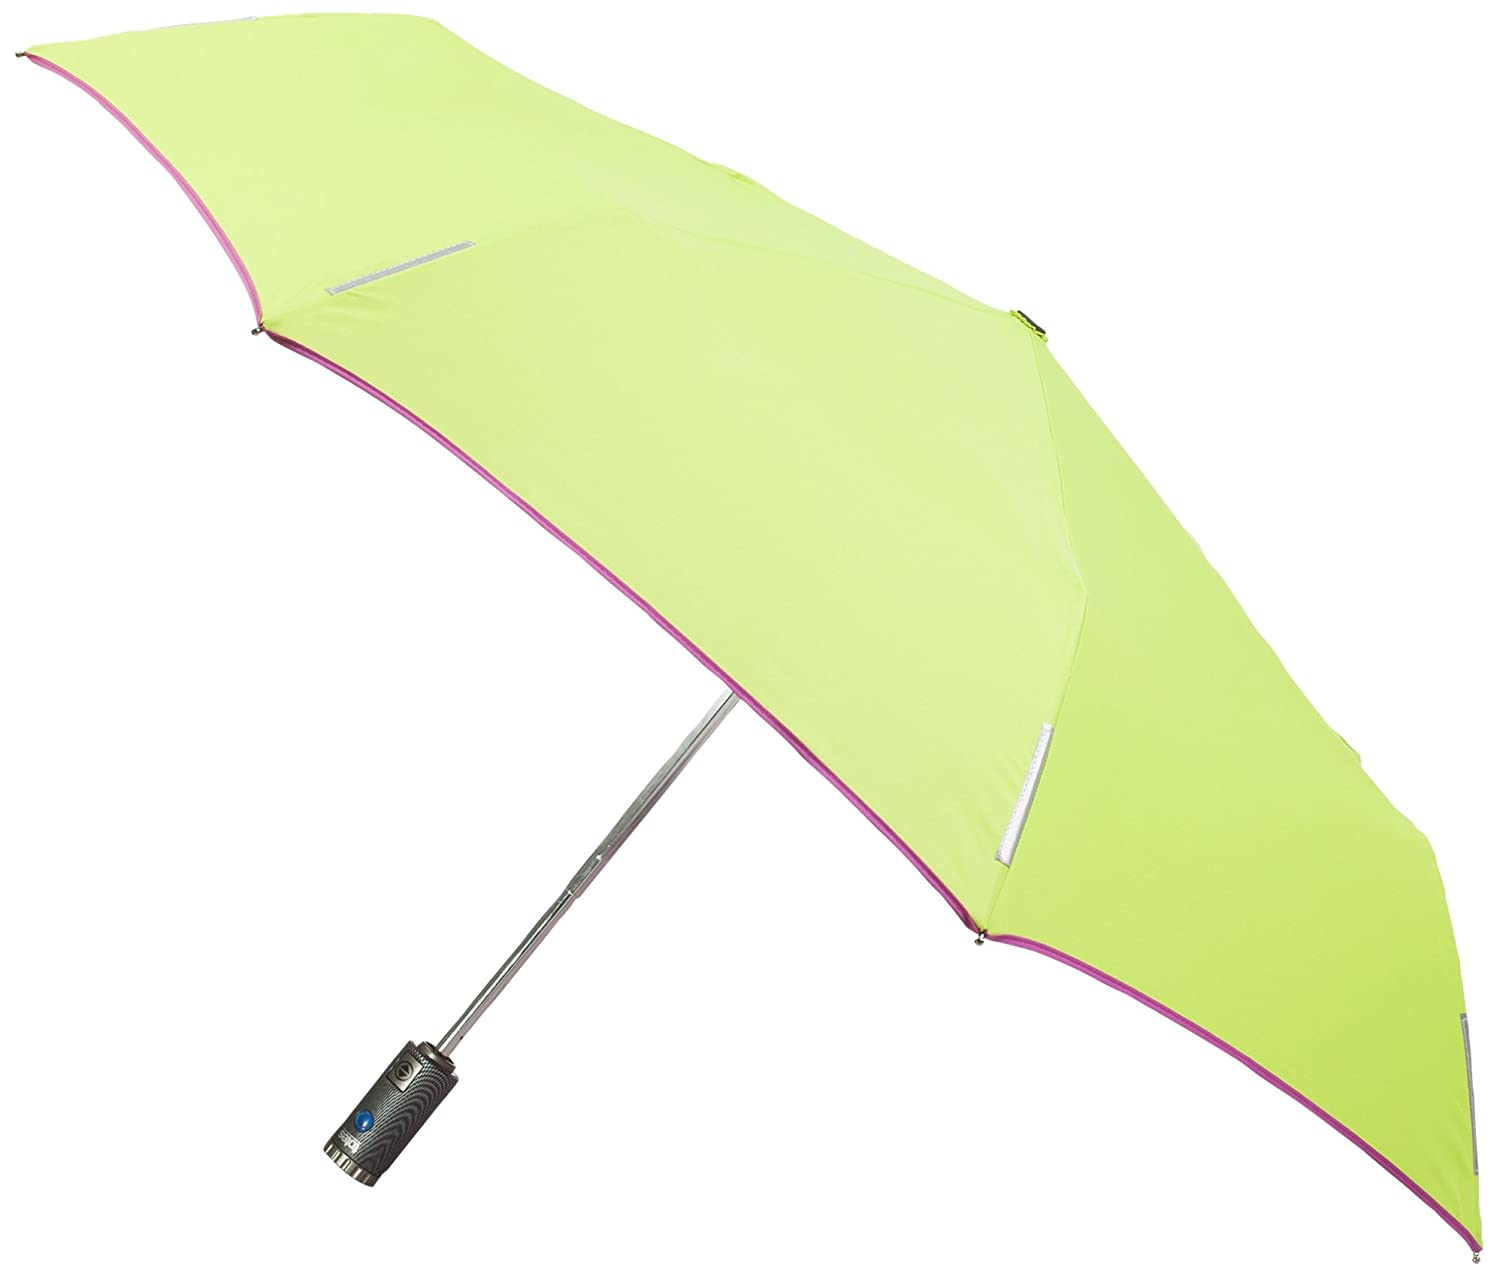 0f7b6495404b Totes Trx Auto Open and Close Light N Go Traveler Umbrella with Built in  Led Flashlight, Apple Green/Strawberry Trim, One Size